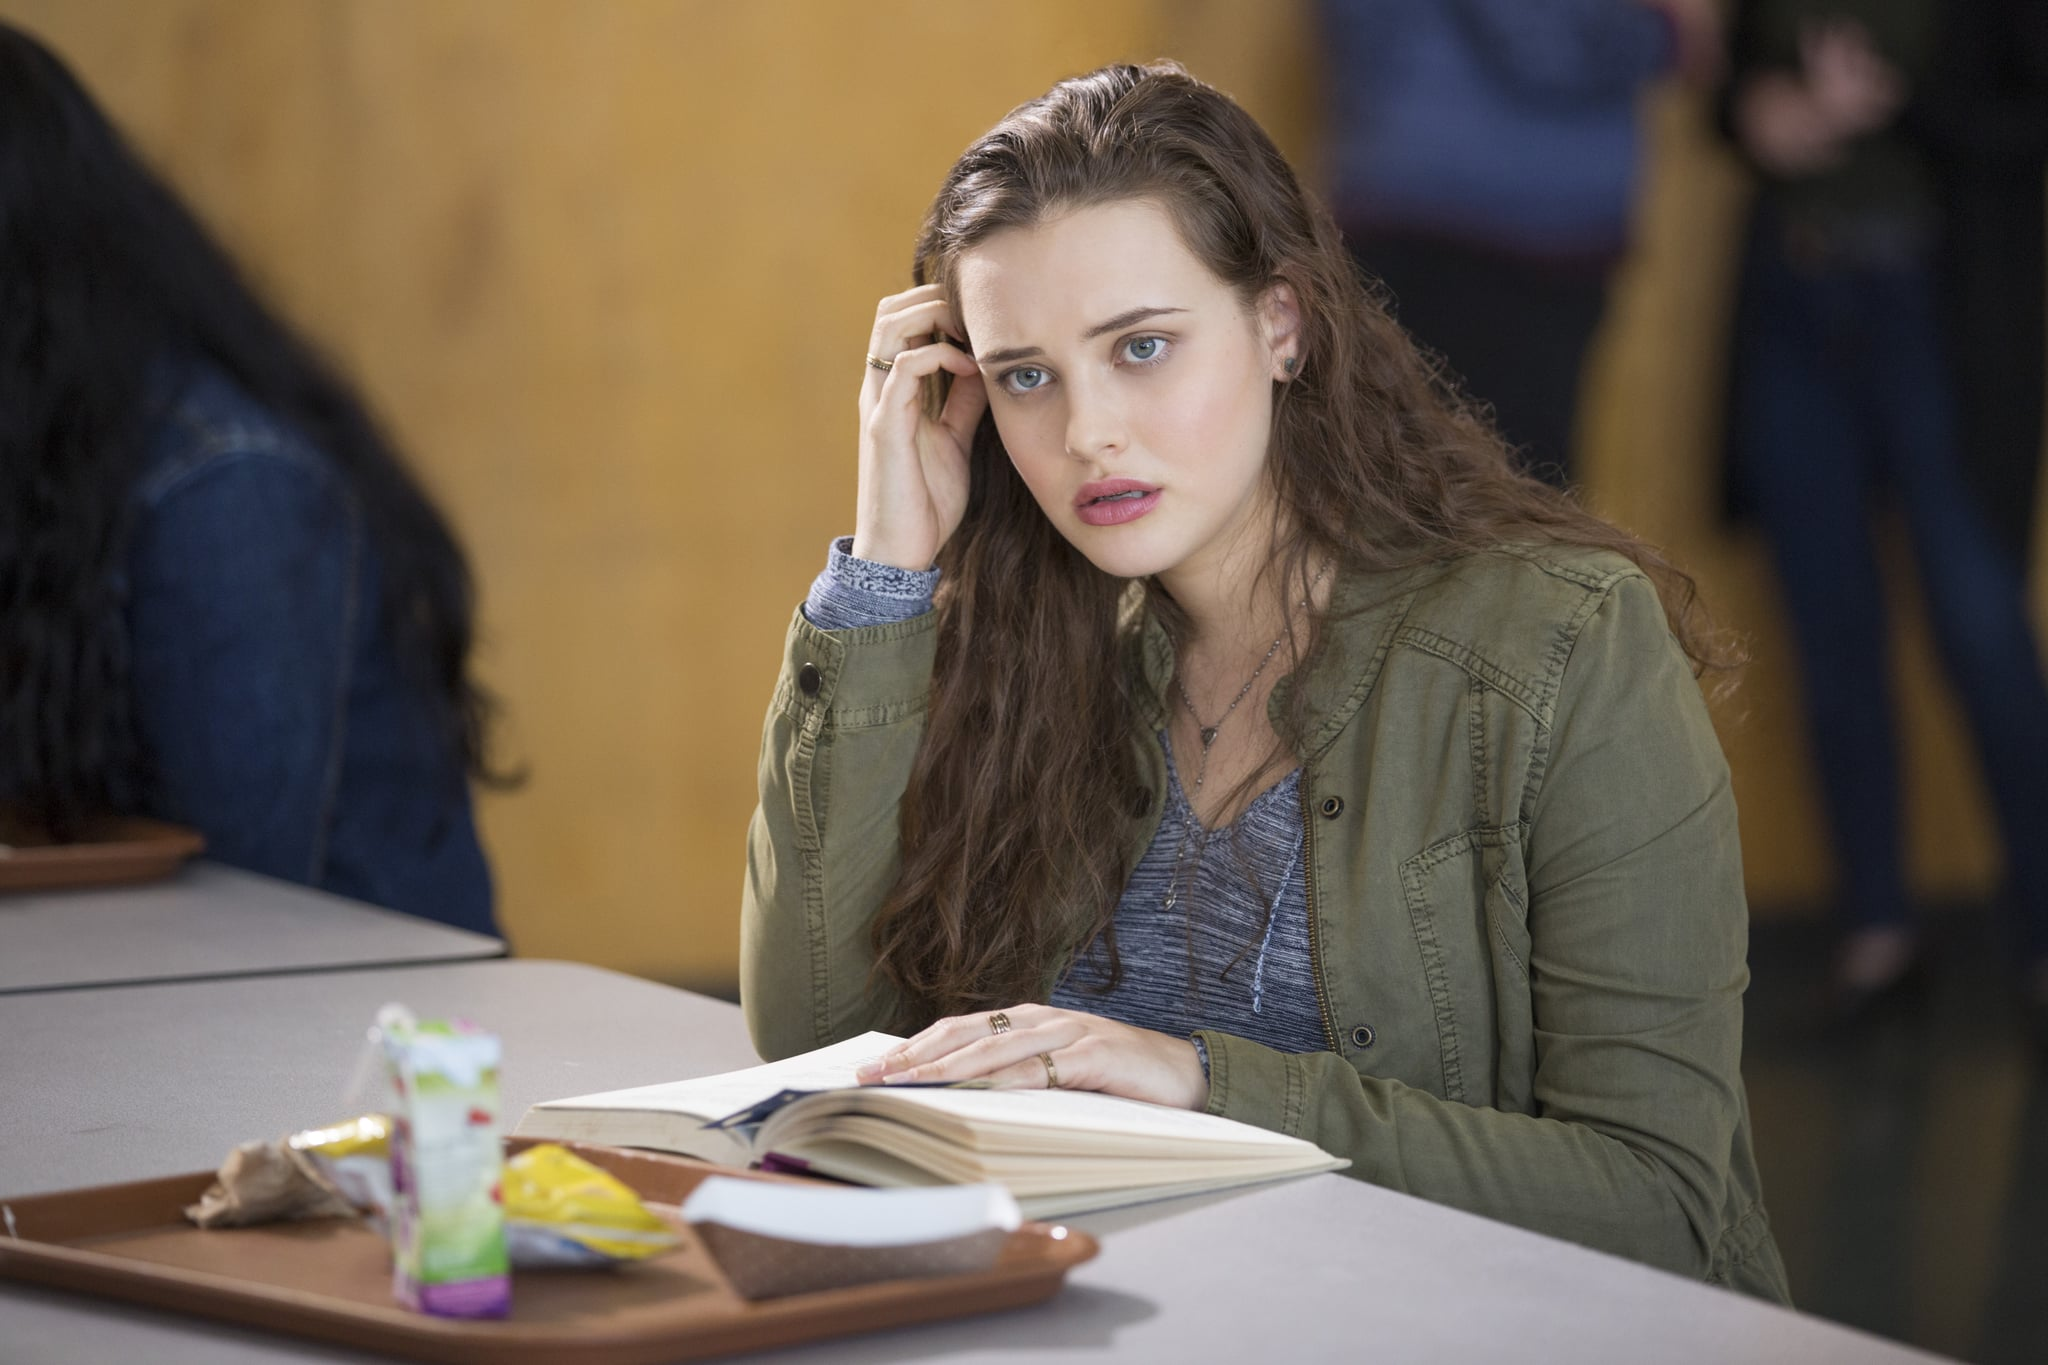 reasons behind suicide of hannah baker 13 reasons why tells the story of hannah baker they also discover hannah left behind a box of cassette tapes on which she recorded the 13 reasons why she a professor at wayne state university in detroit, notes in an email to newsweek that suicide rates are usually higher in the.